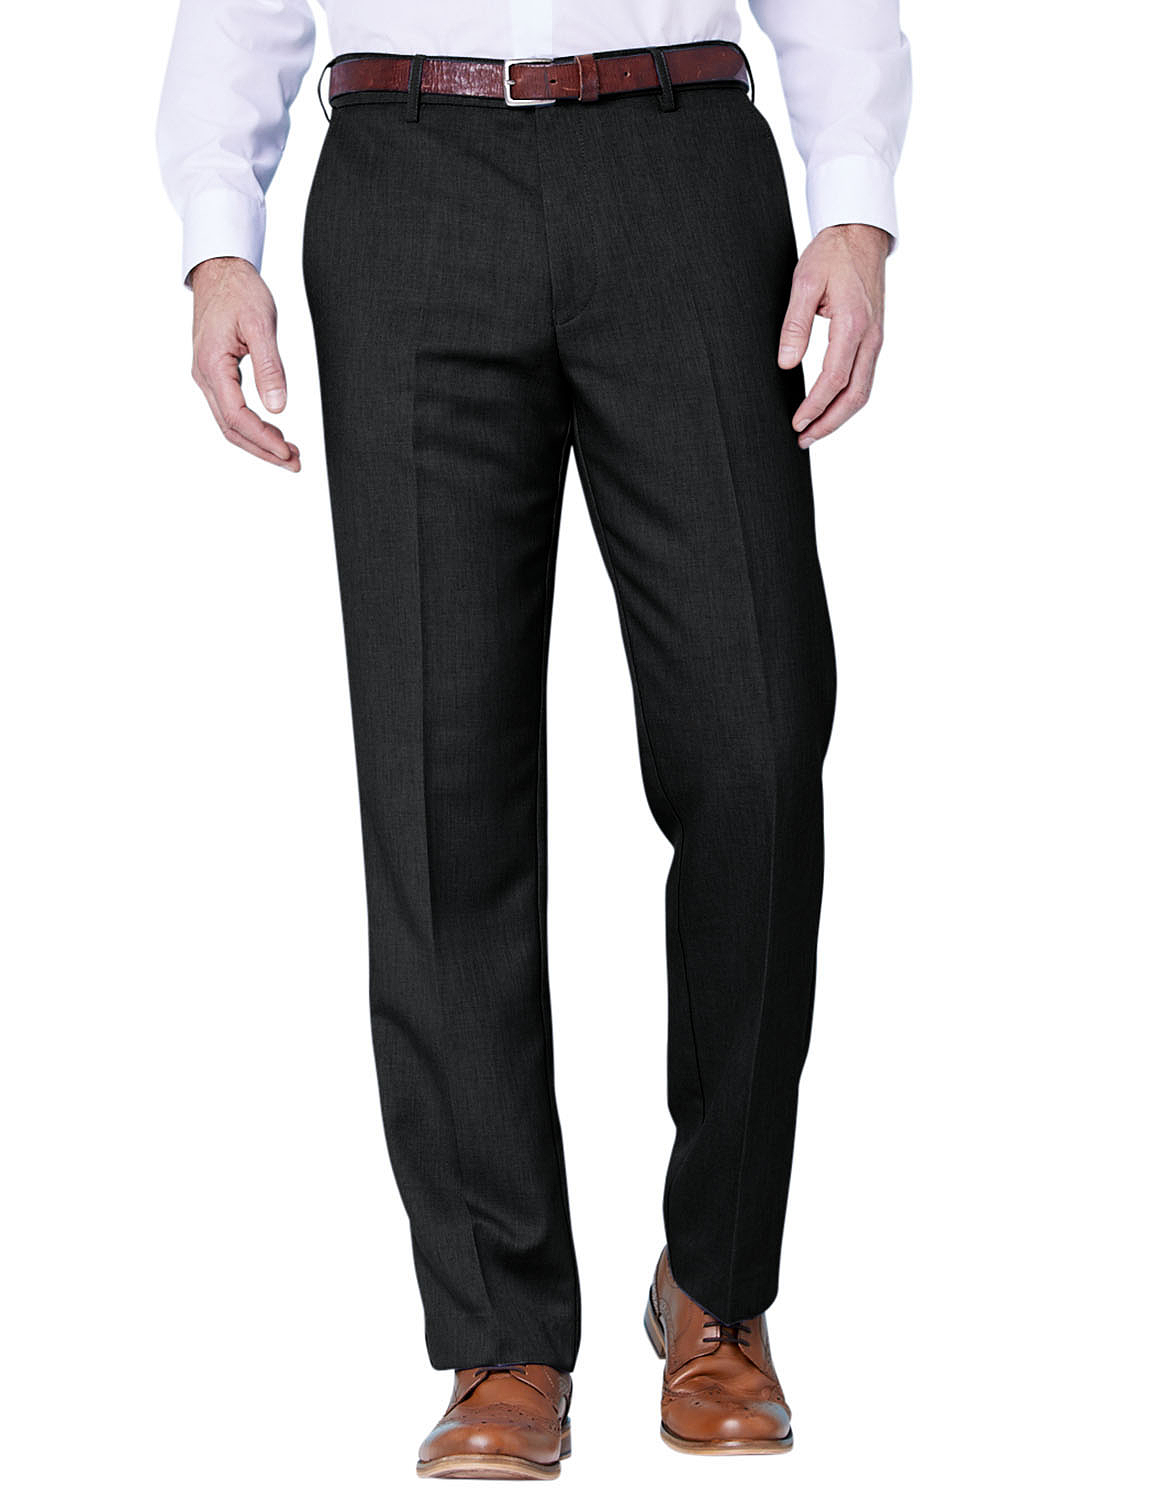 Farah Flex Trouser with Self-Adjusting Waistband